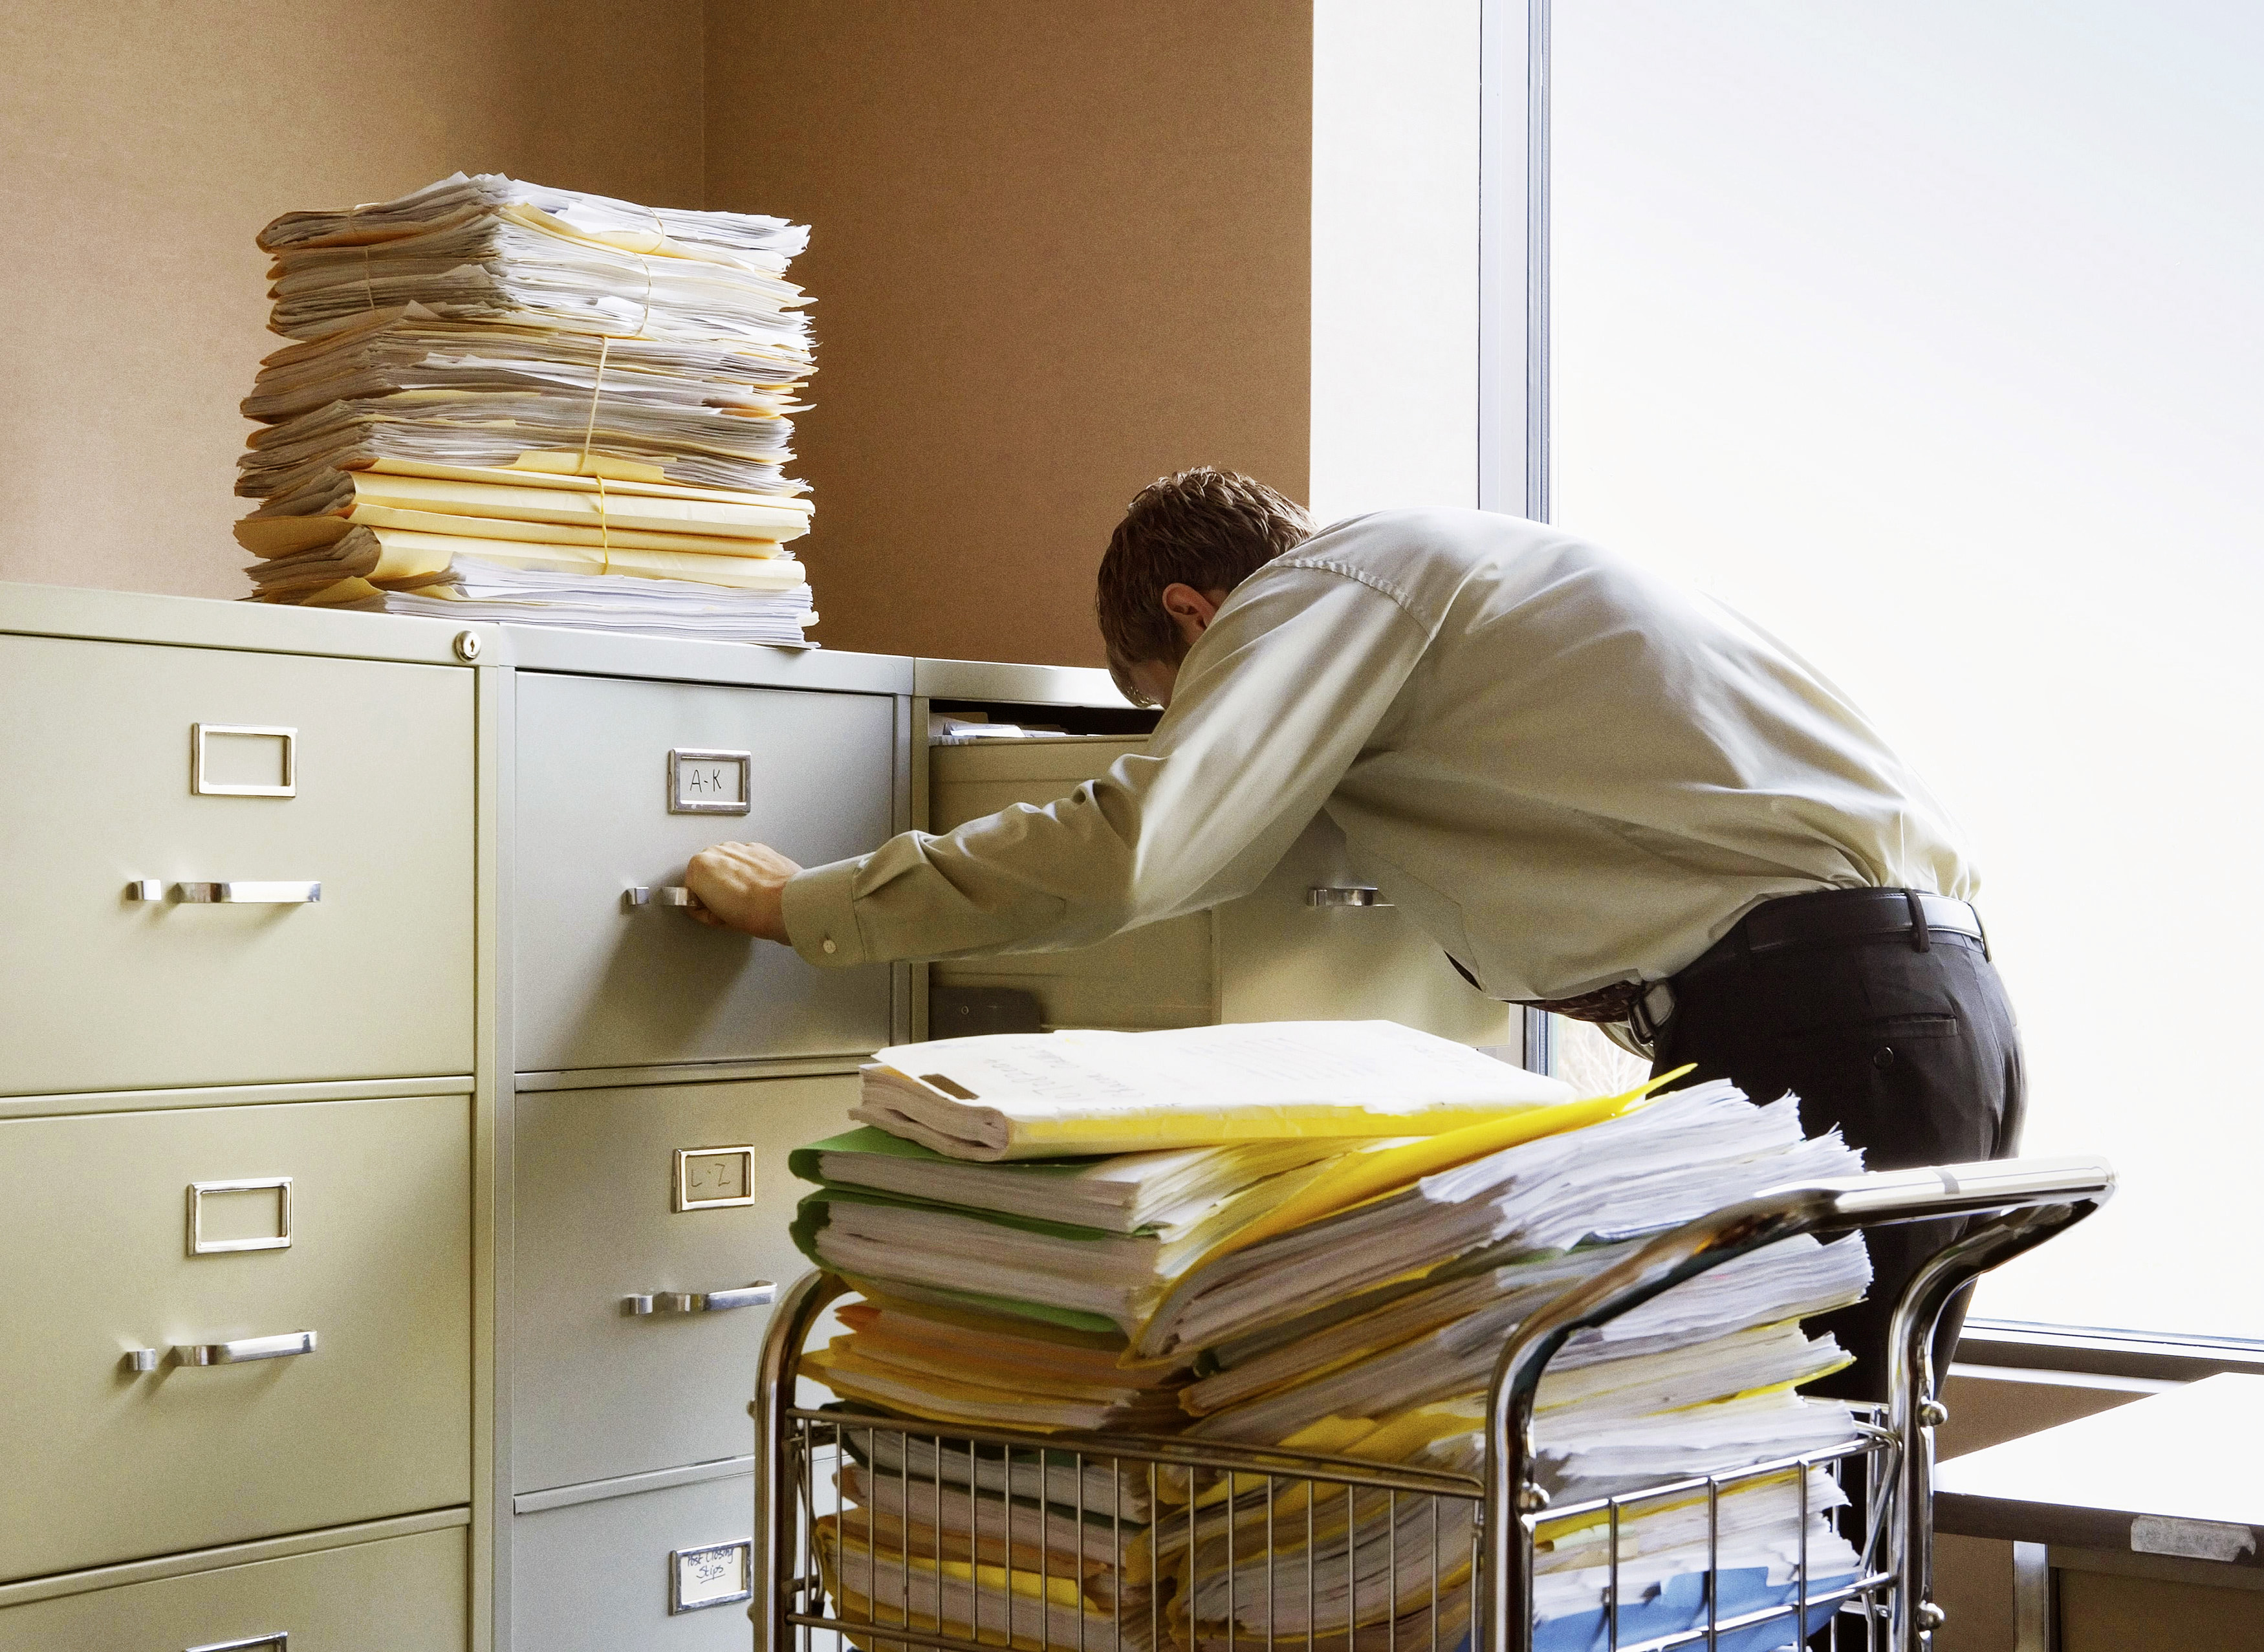 Businessman searching for documents in metal file cabinets.